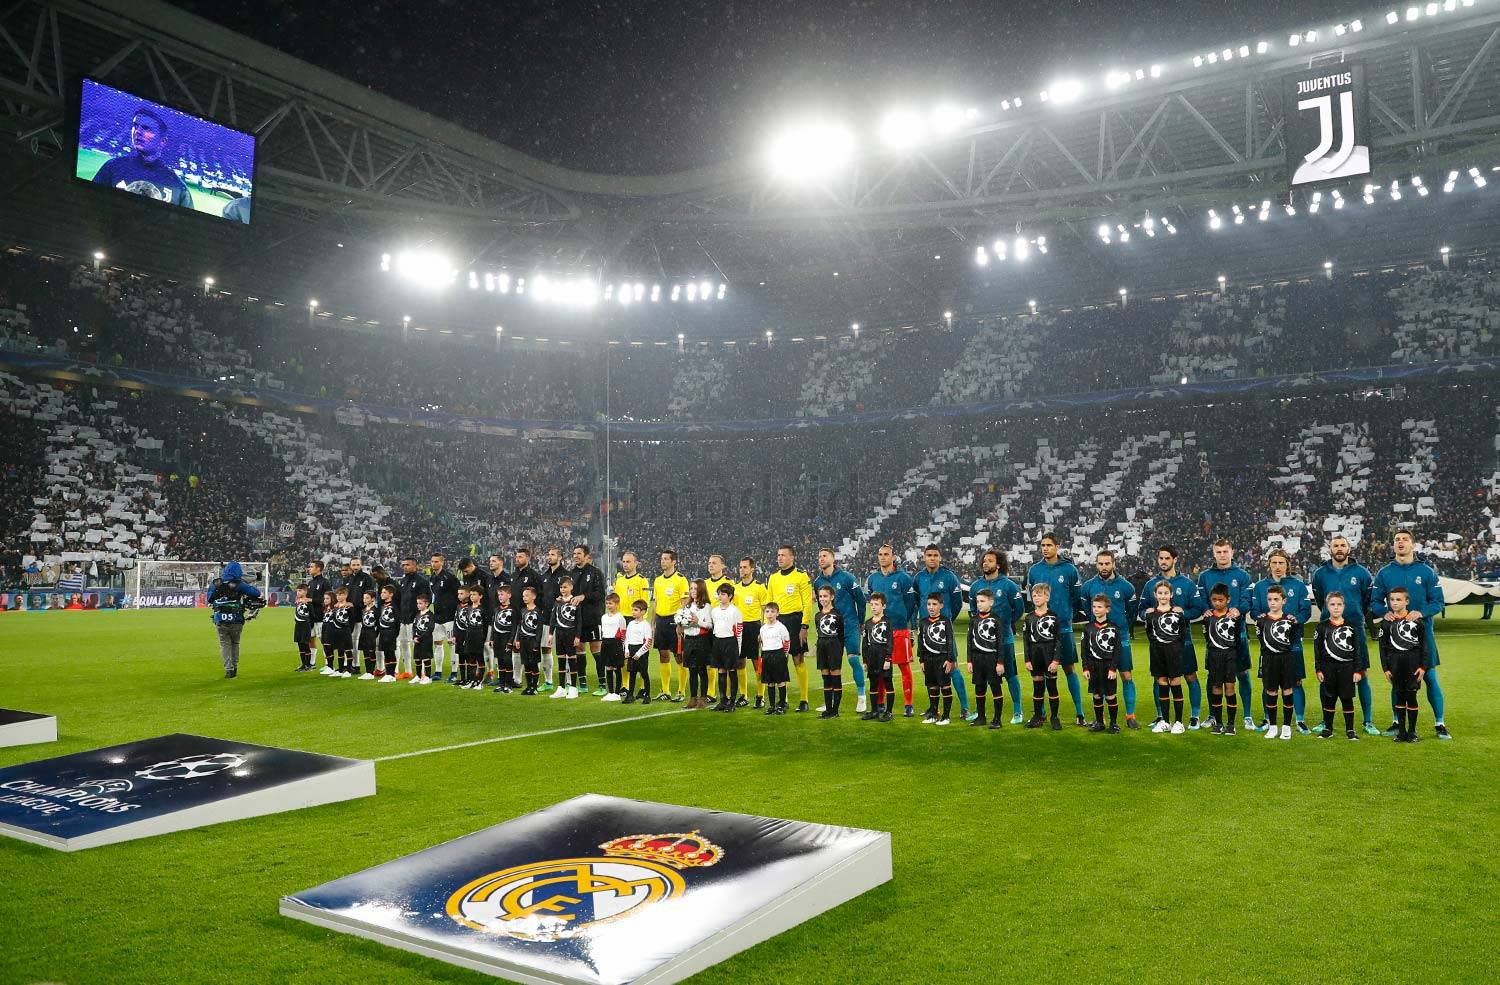 Real Madrid - Juventus - Real Madrid - 03-04-2018